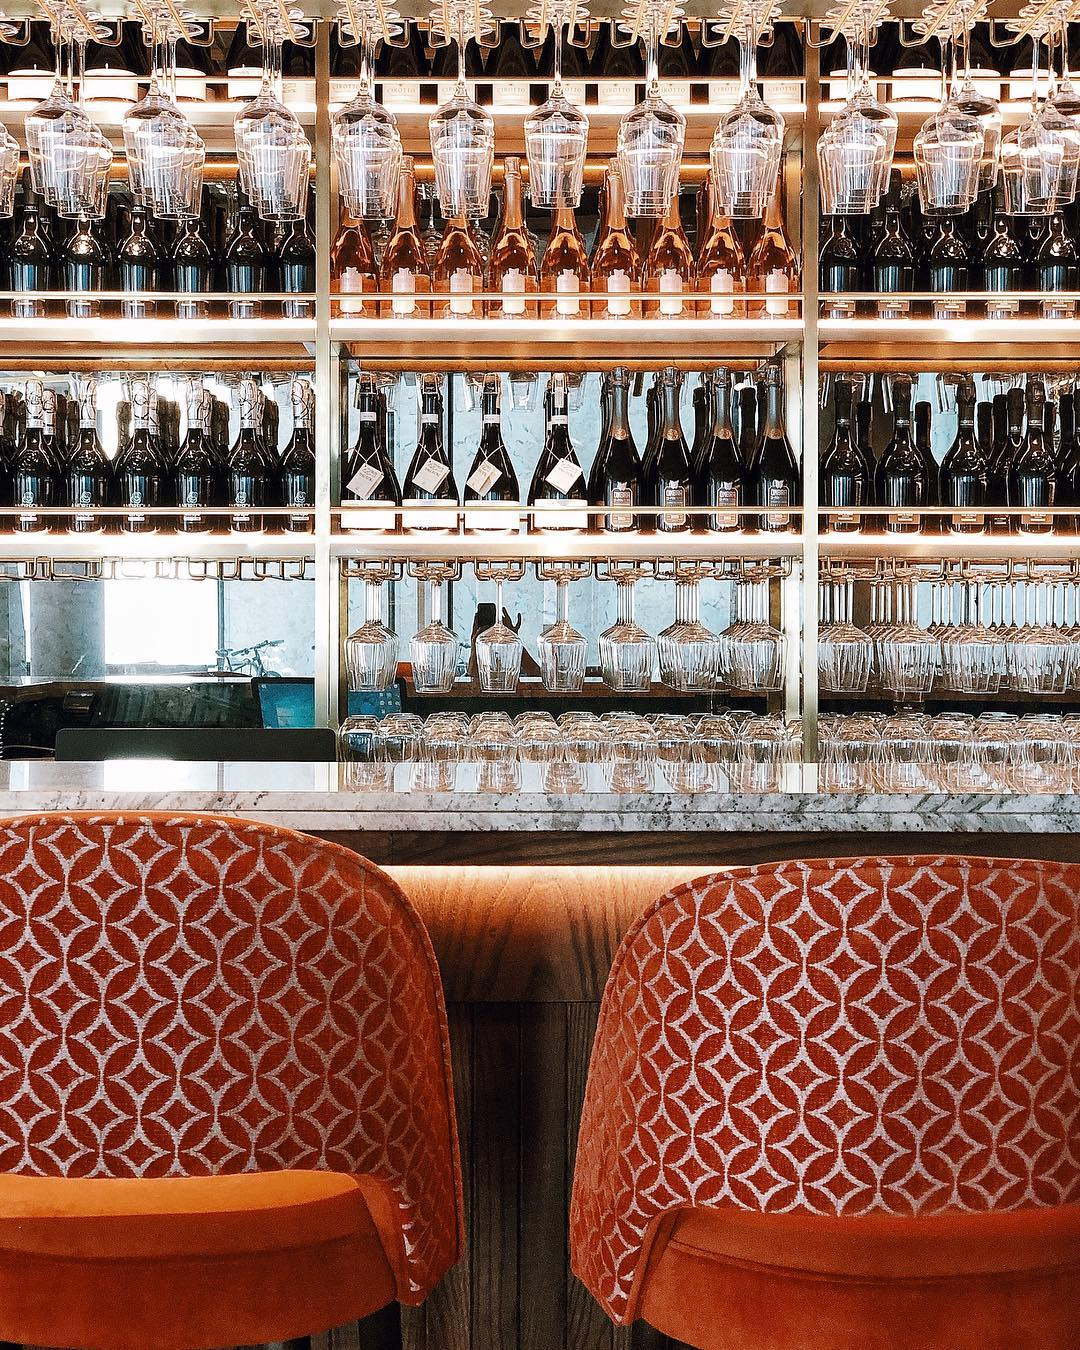 Prosecco House. (Photo: @therollinsonlondon)